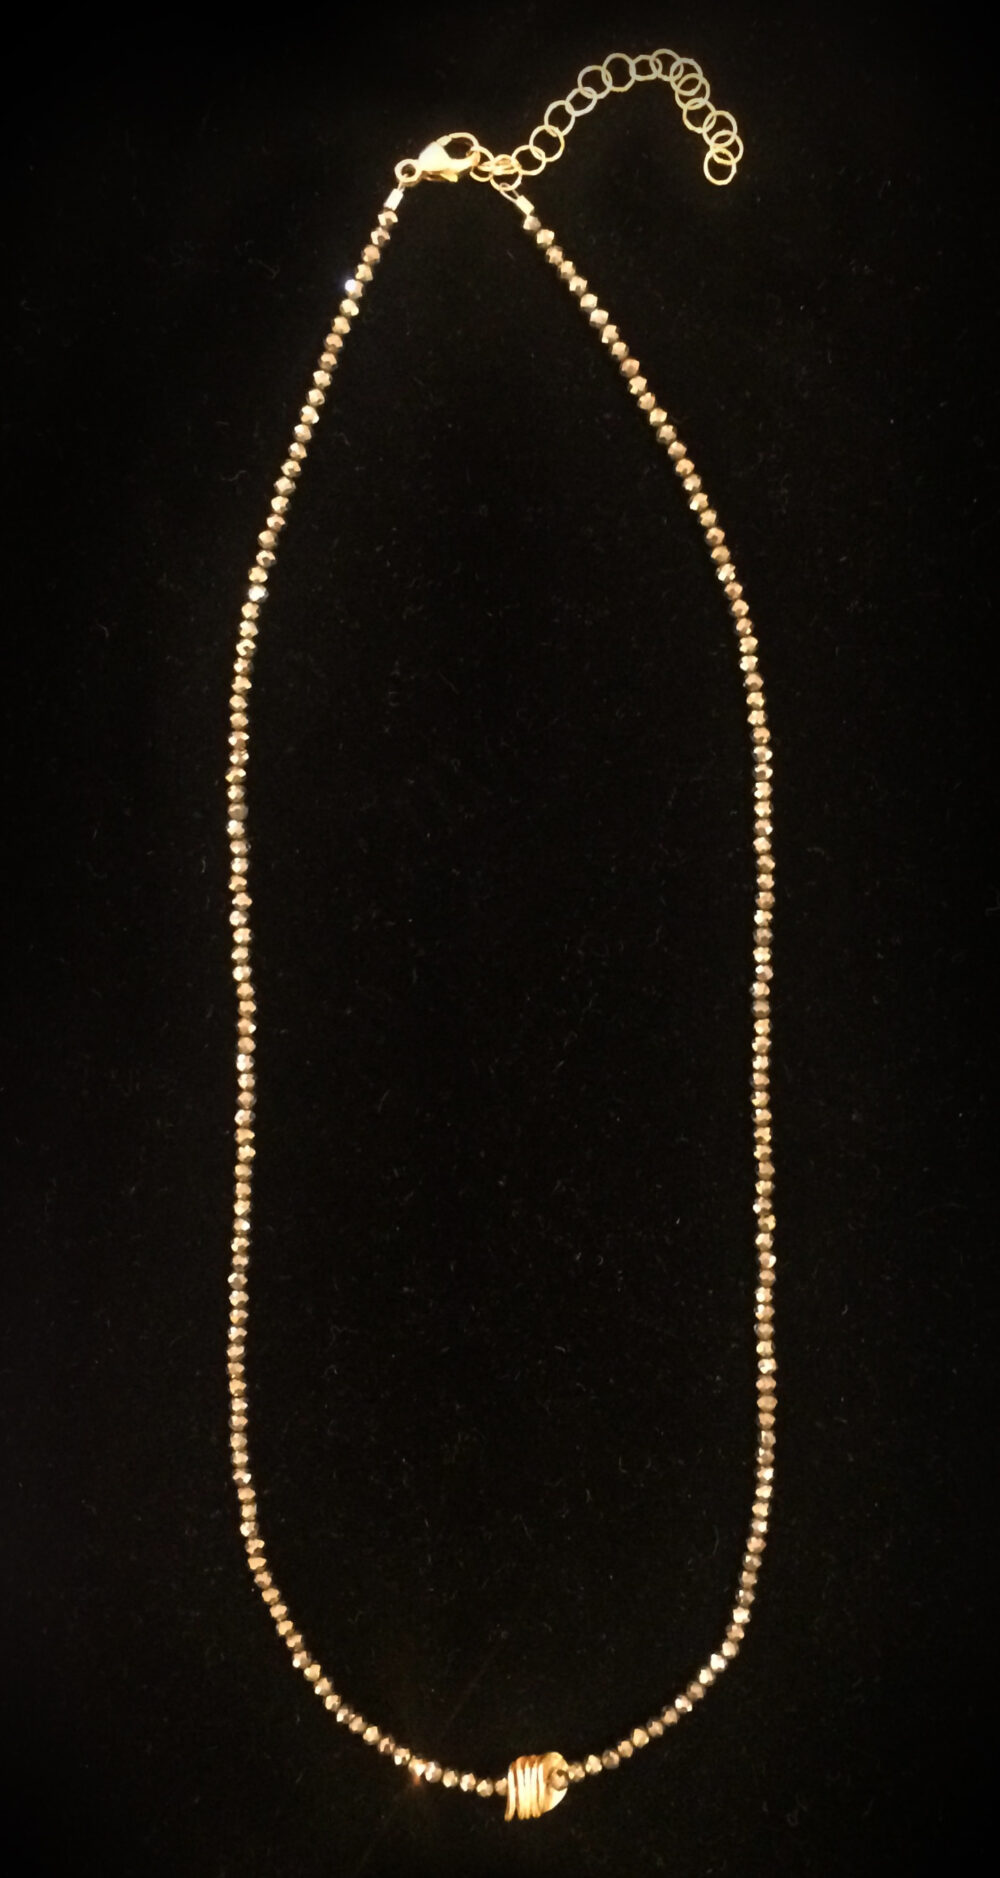 Saskia Devries - Gia Necklace